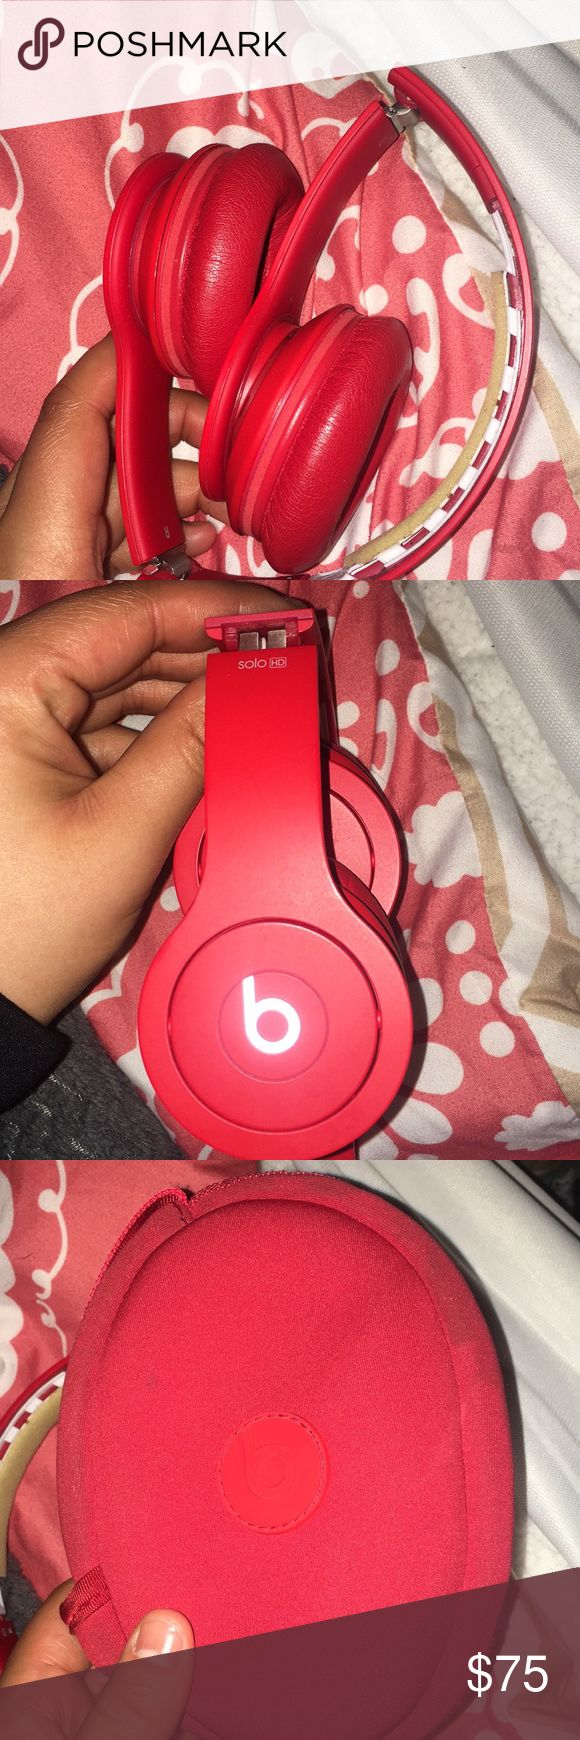 Beats by Dre headphones these still work perfectly fine! The top part is missing and so is the cord..but if you have a refusal aux cord then that will work just fine. Comes with box and case Accessories